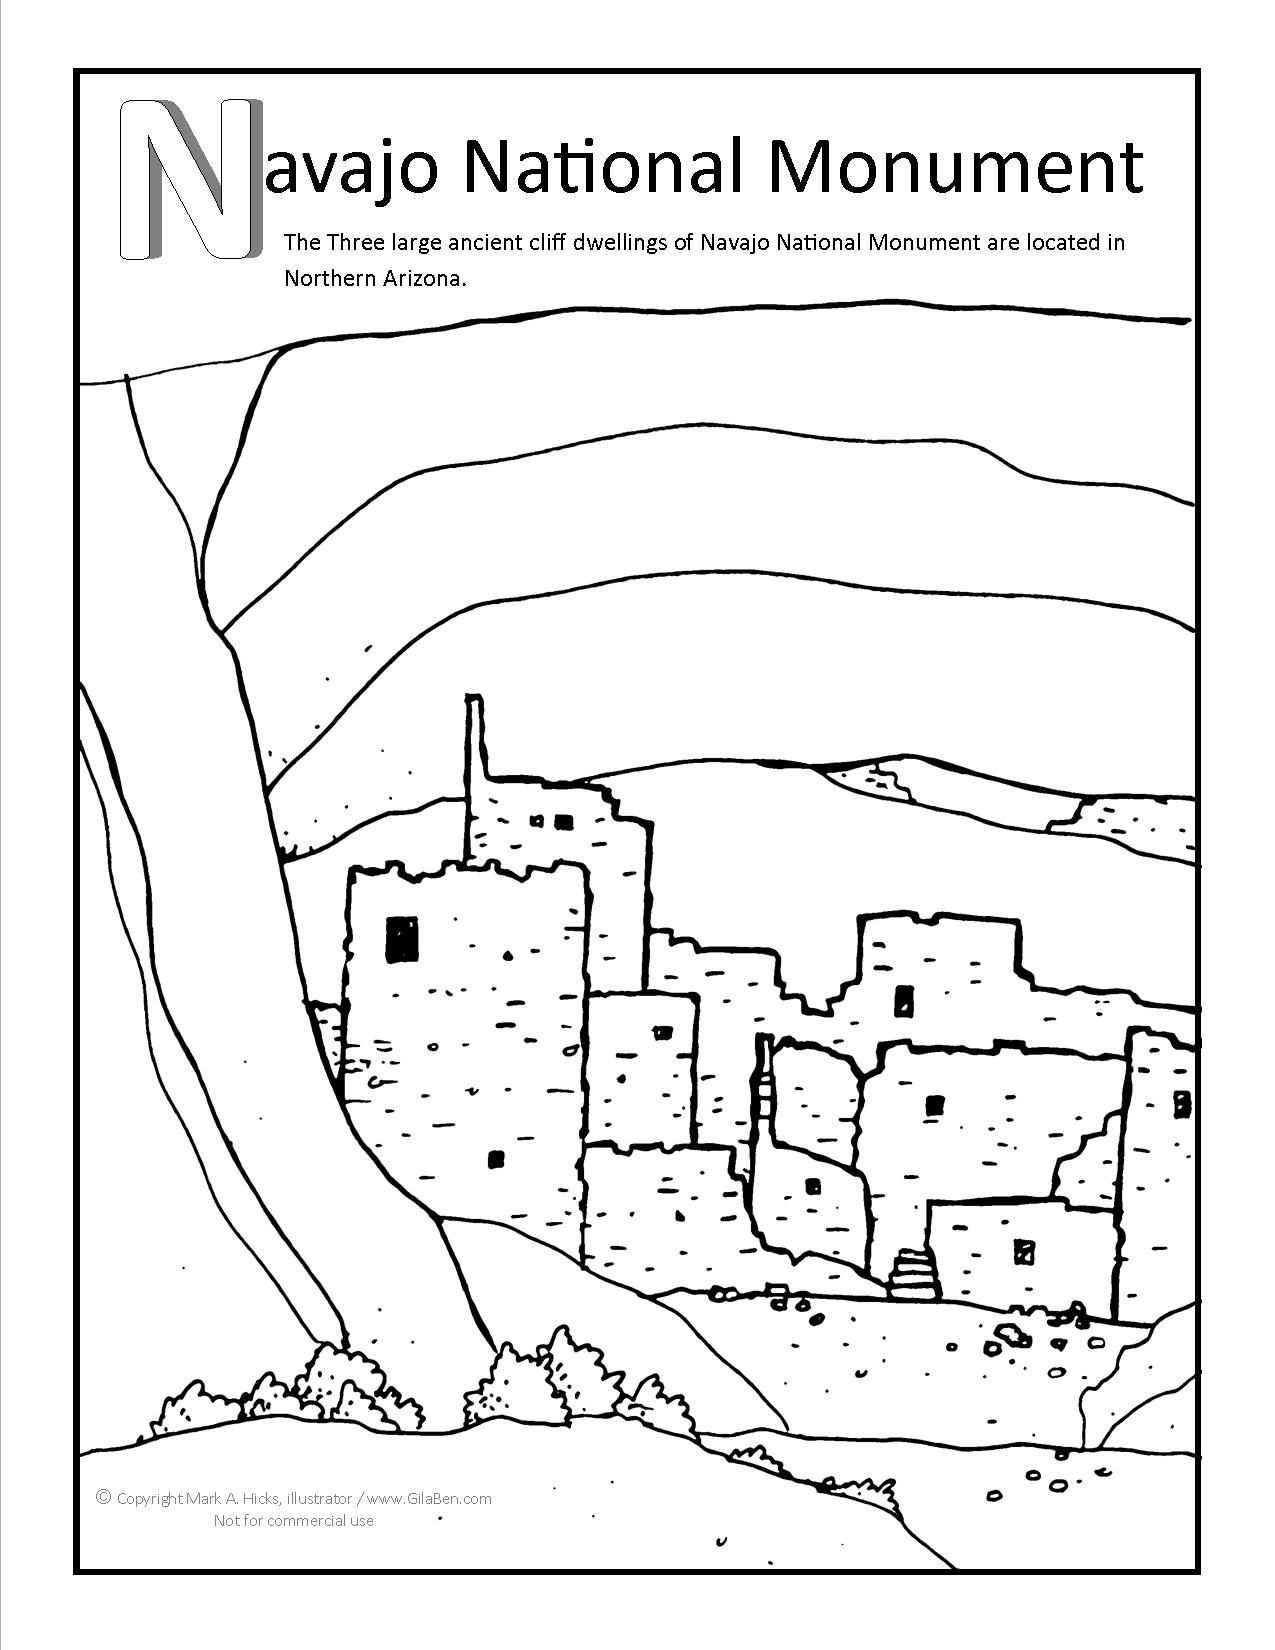 navajo national monument coloring page at gilaben com arizona